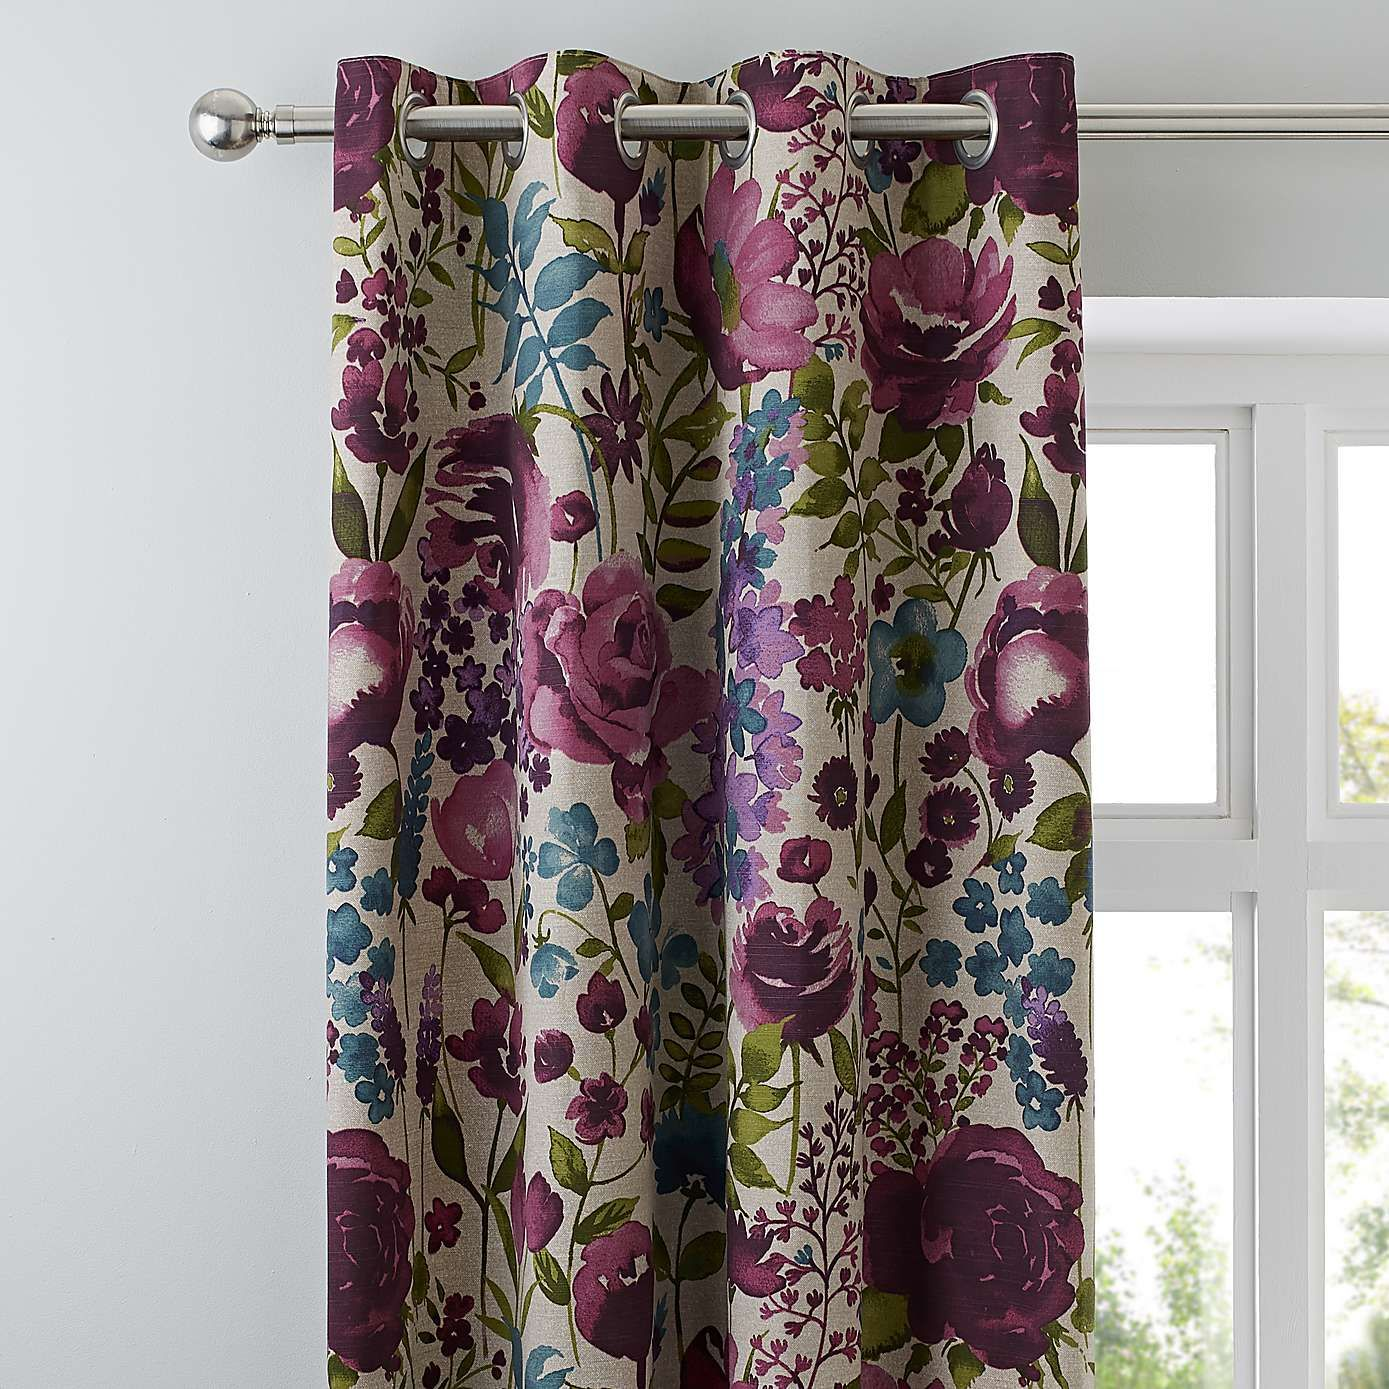 Misty Meadow Lined Eyelet Curtains Dunelm Ready Made Eyelet Curtains Curtains Dunelm Curtains